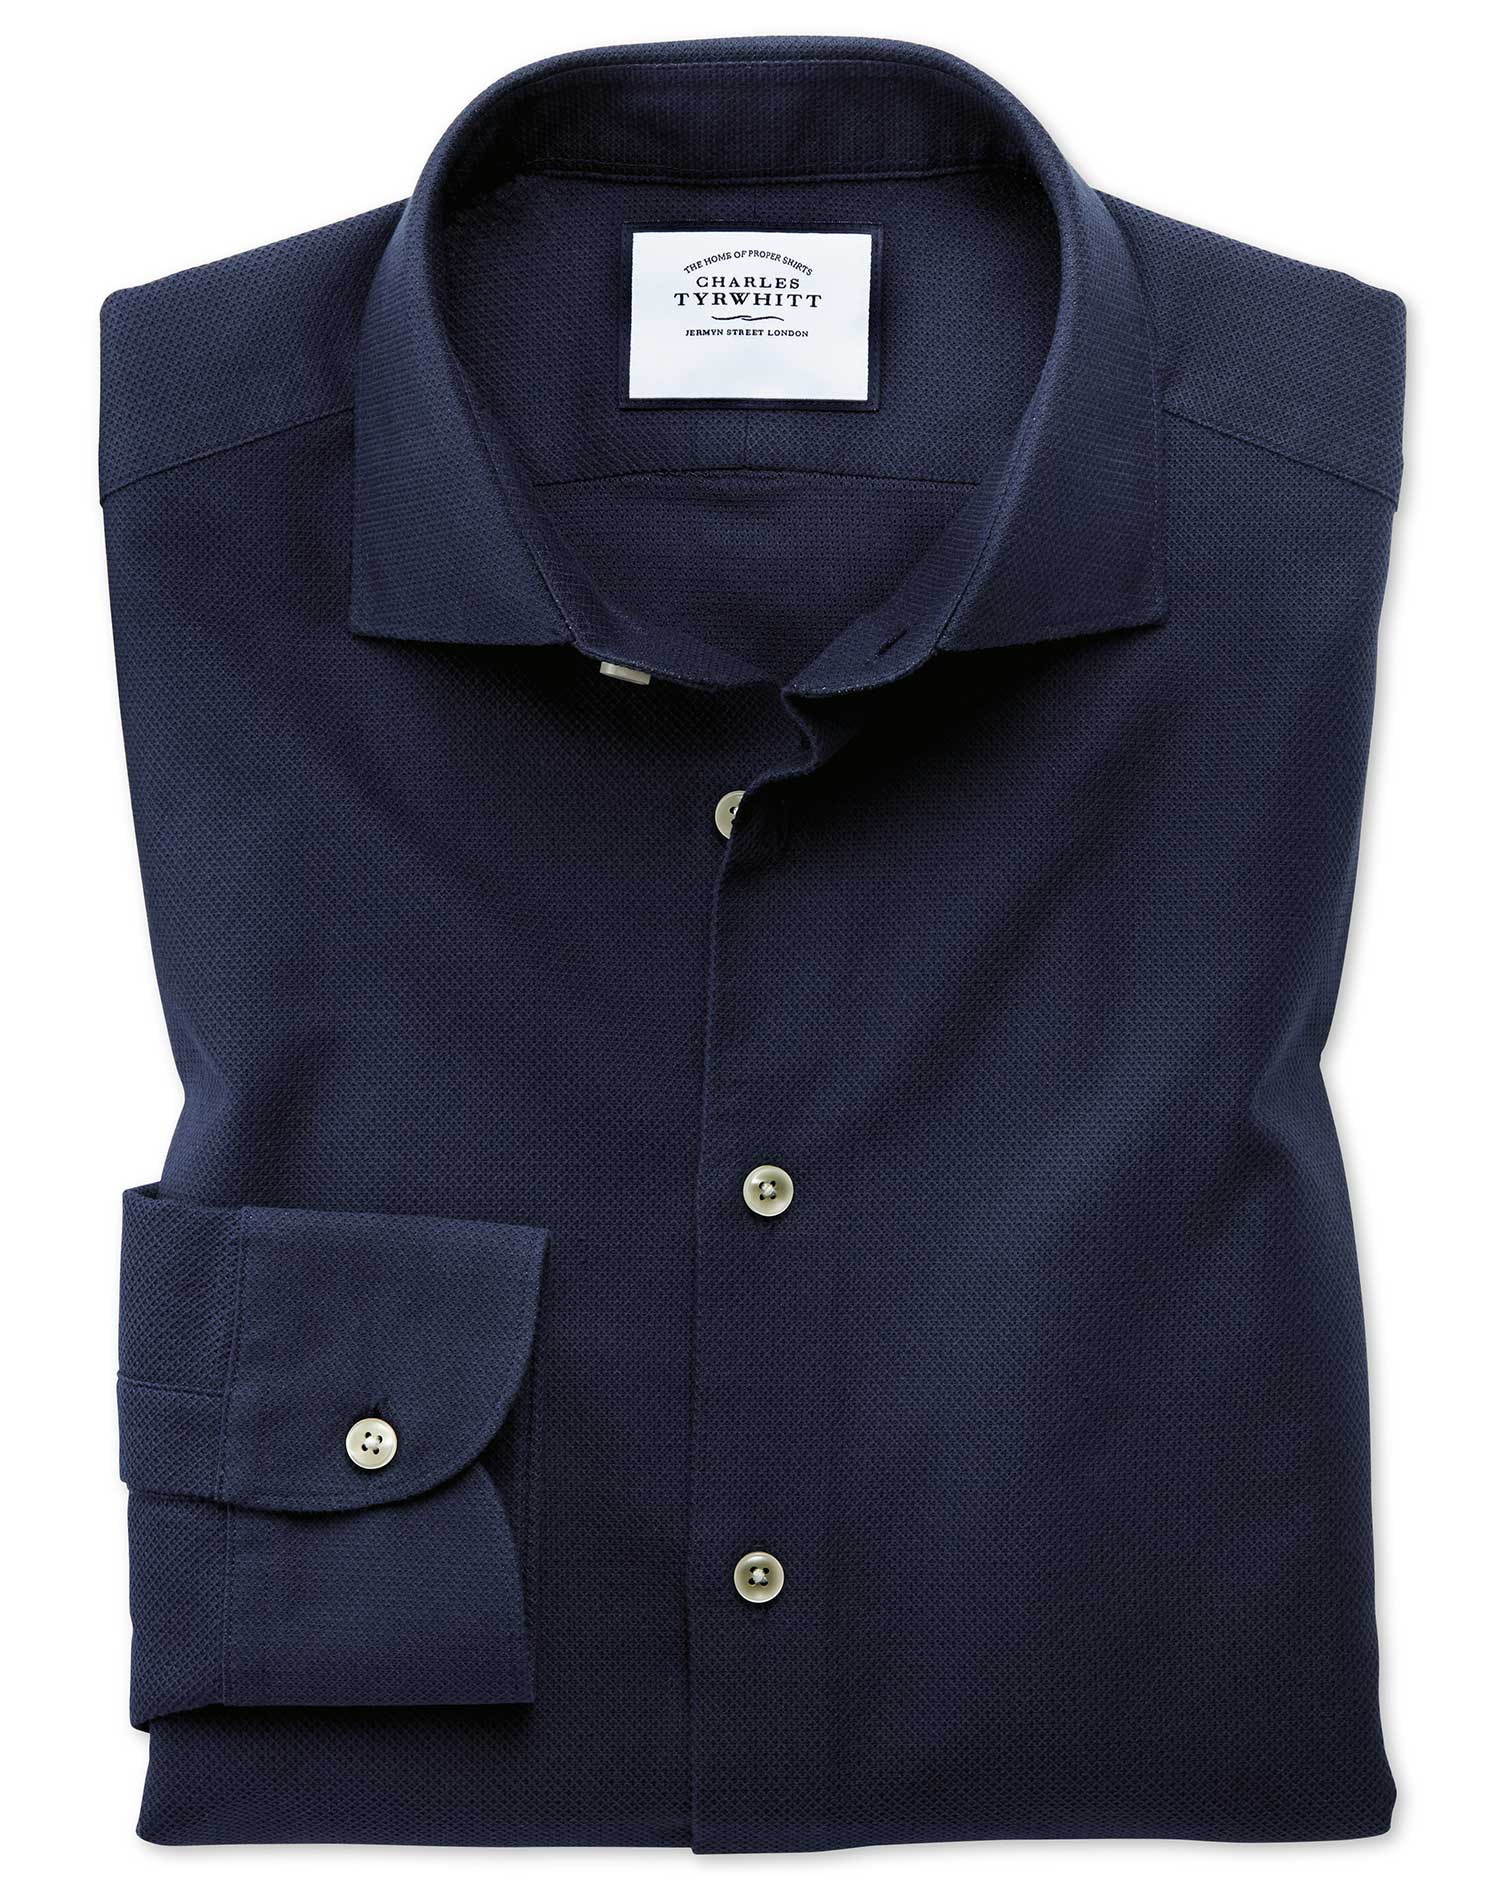 Slim Fit Business Casual Leno Texture Navy Cotton Formal Shirt Single Cuff Size 17/37 by Charles Tyr